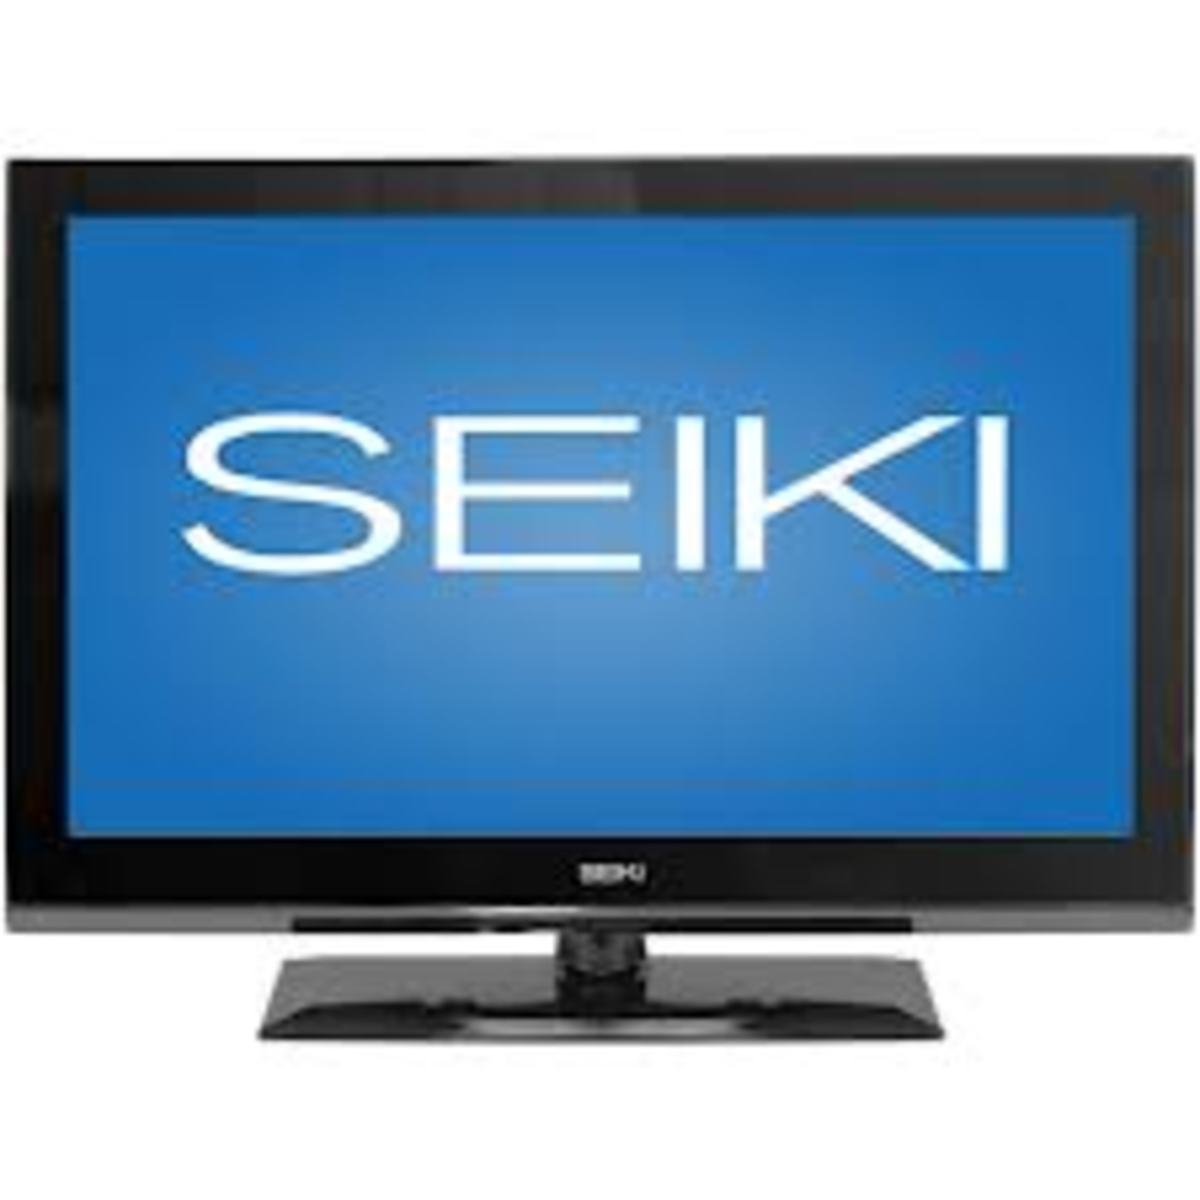 How to Update Seiki TV Firmware